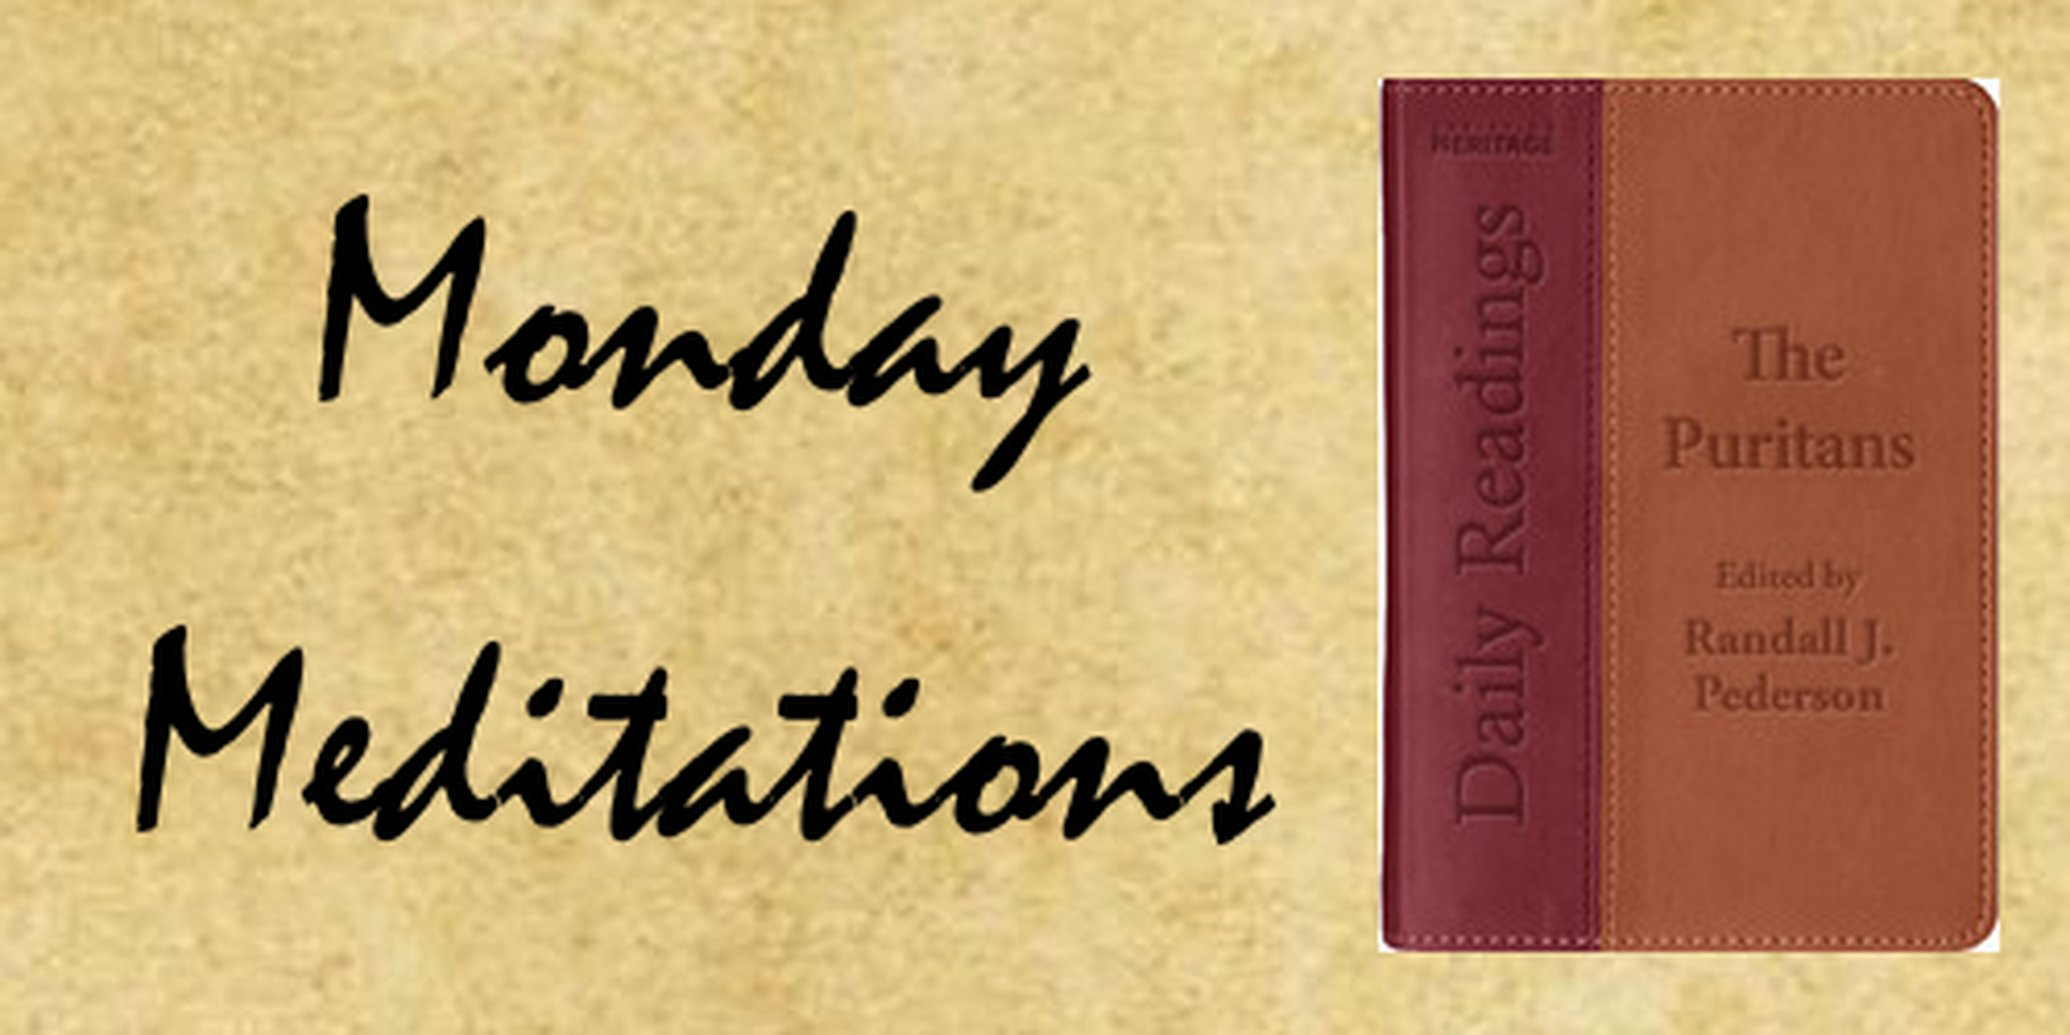 Monday Meditations: Delight in God's Commands